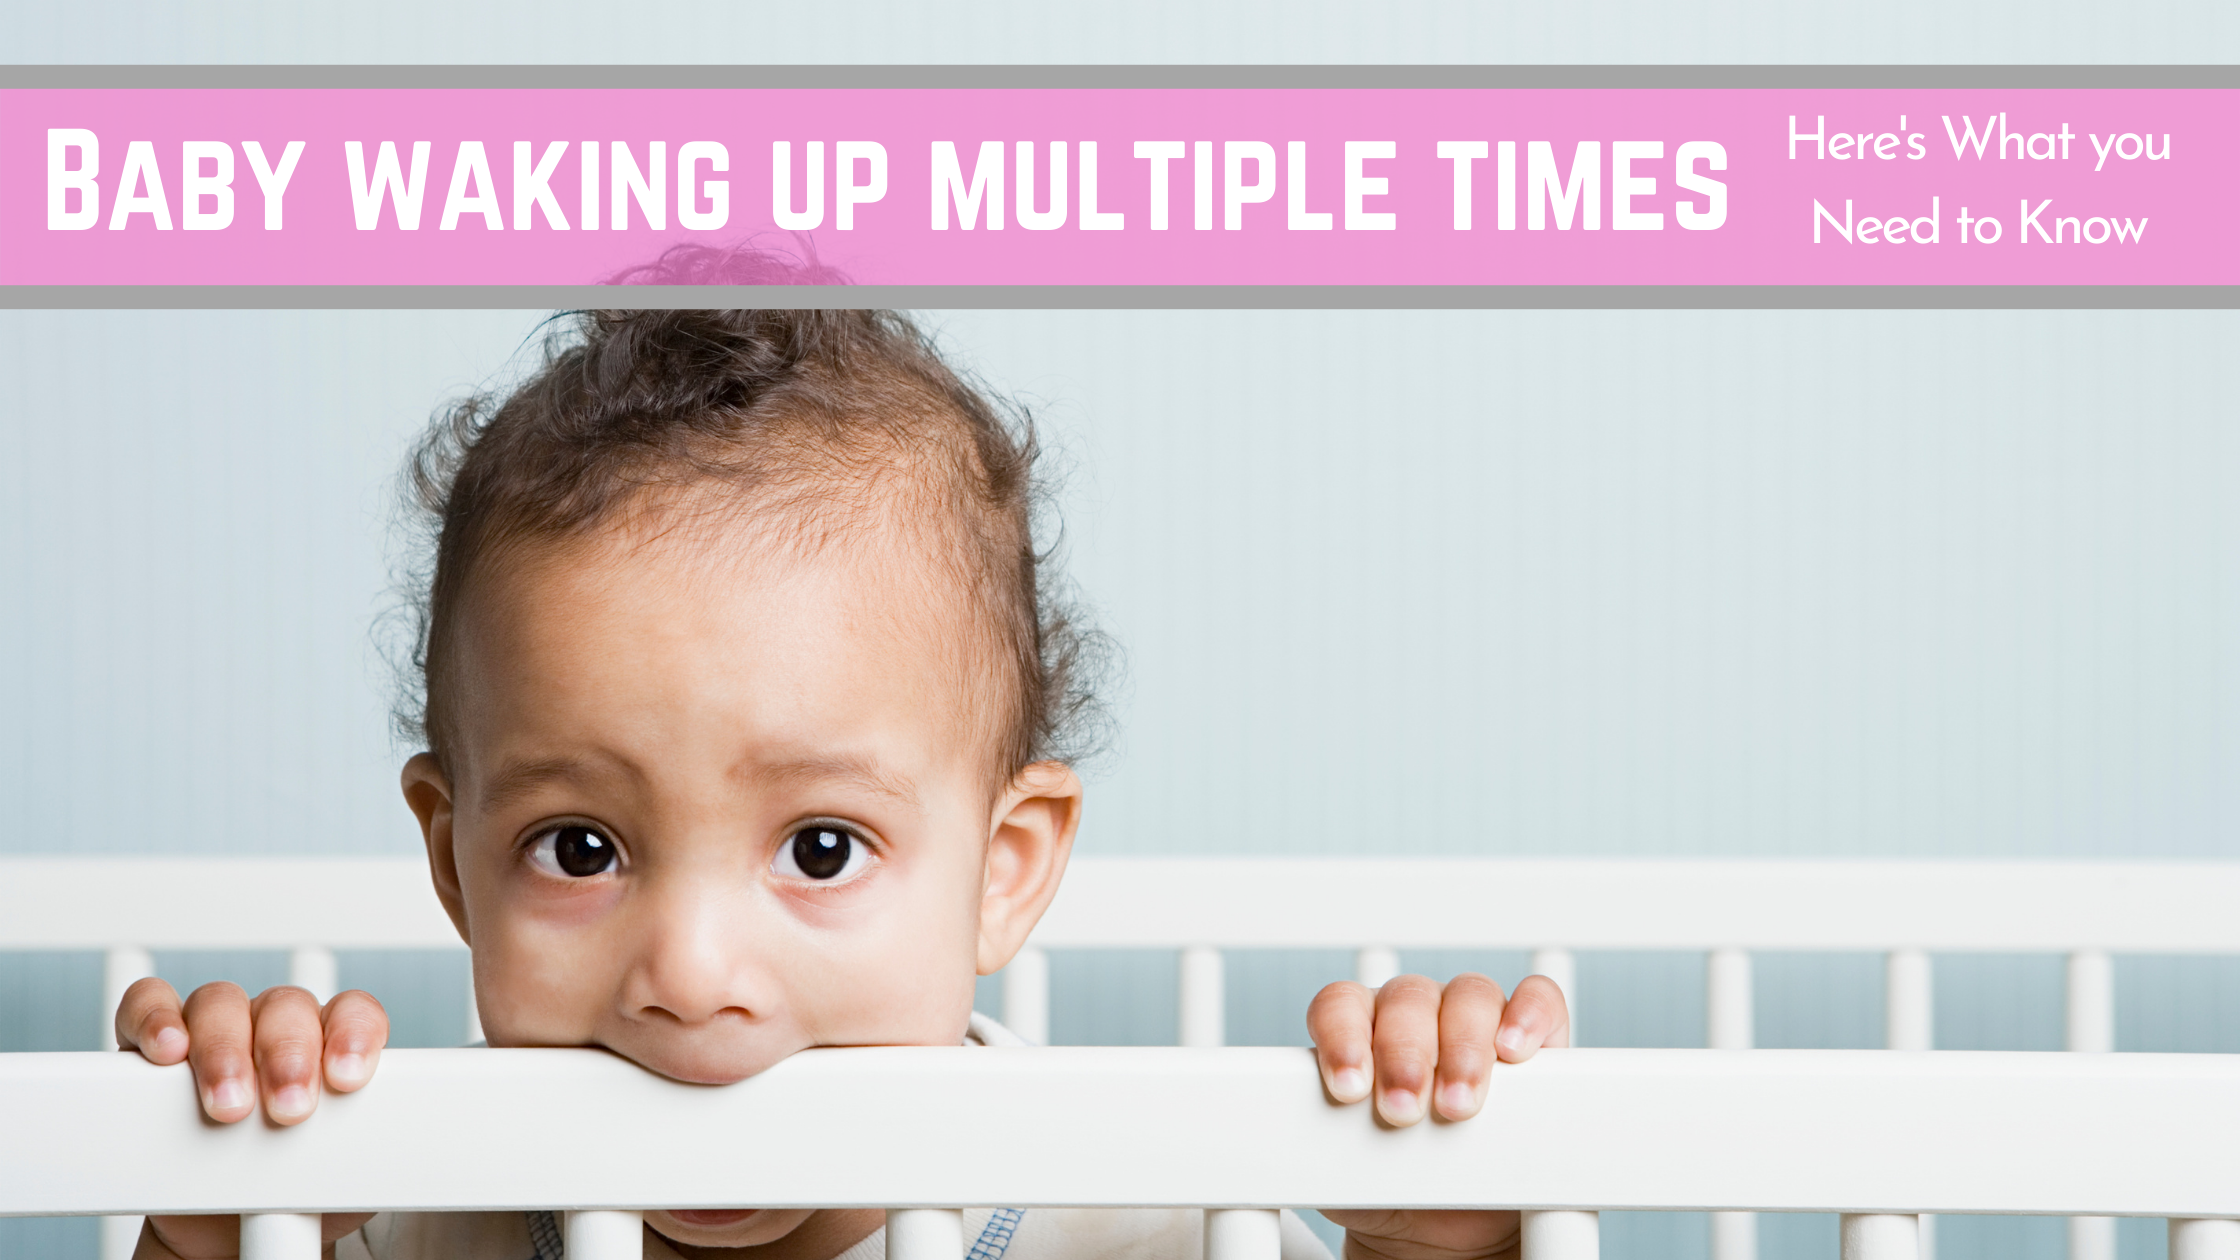 Baby Waking Up Multiple Times a Night: here's what you need to know